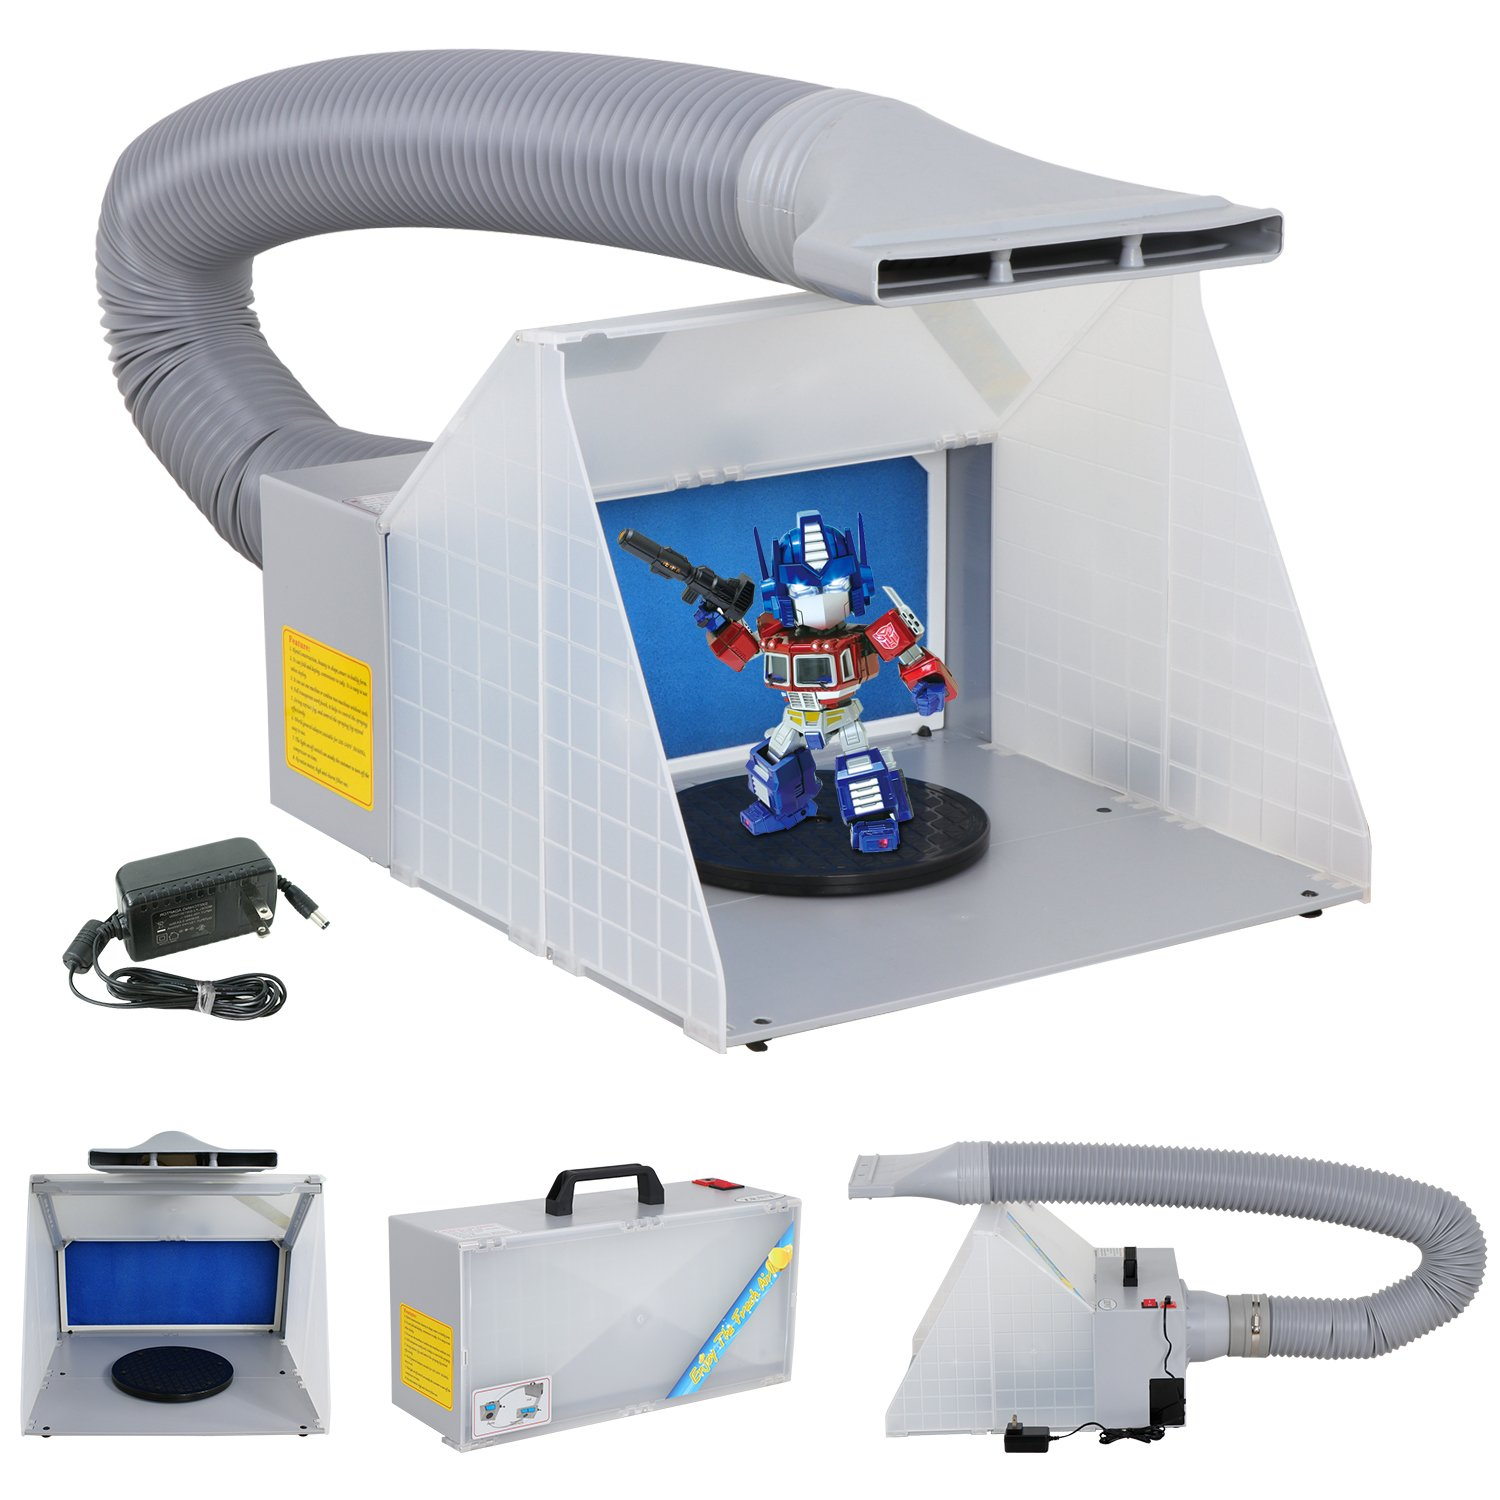 Smartxchoices Portable Airbrush Spray Booth Kit with Turn Table/Extension Hose/Powerful Paint Craft Odor Extractory for Handcraft,Painting,Art,Toy Model, Hobby, Nails, T-Shirts & More